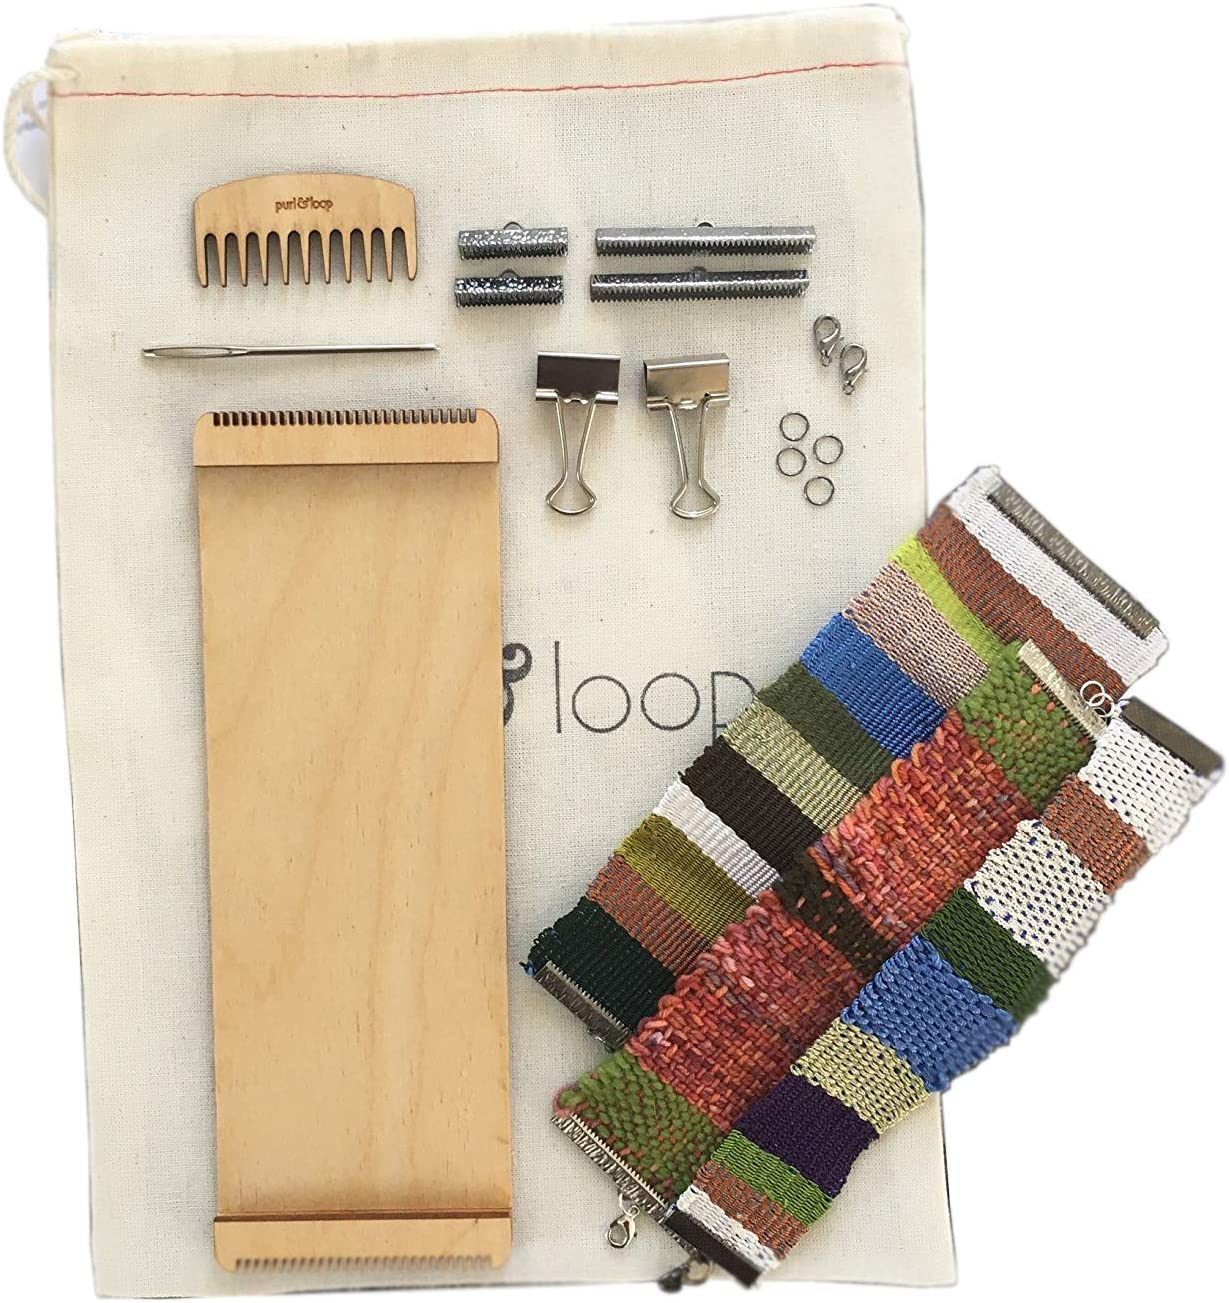 8.0 Purl /& Loop Birch Stash Blaster Loom